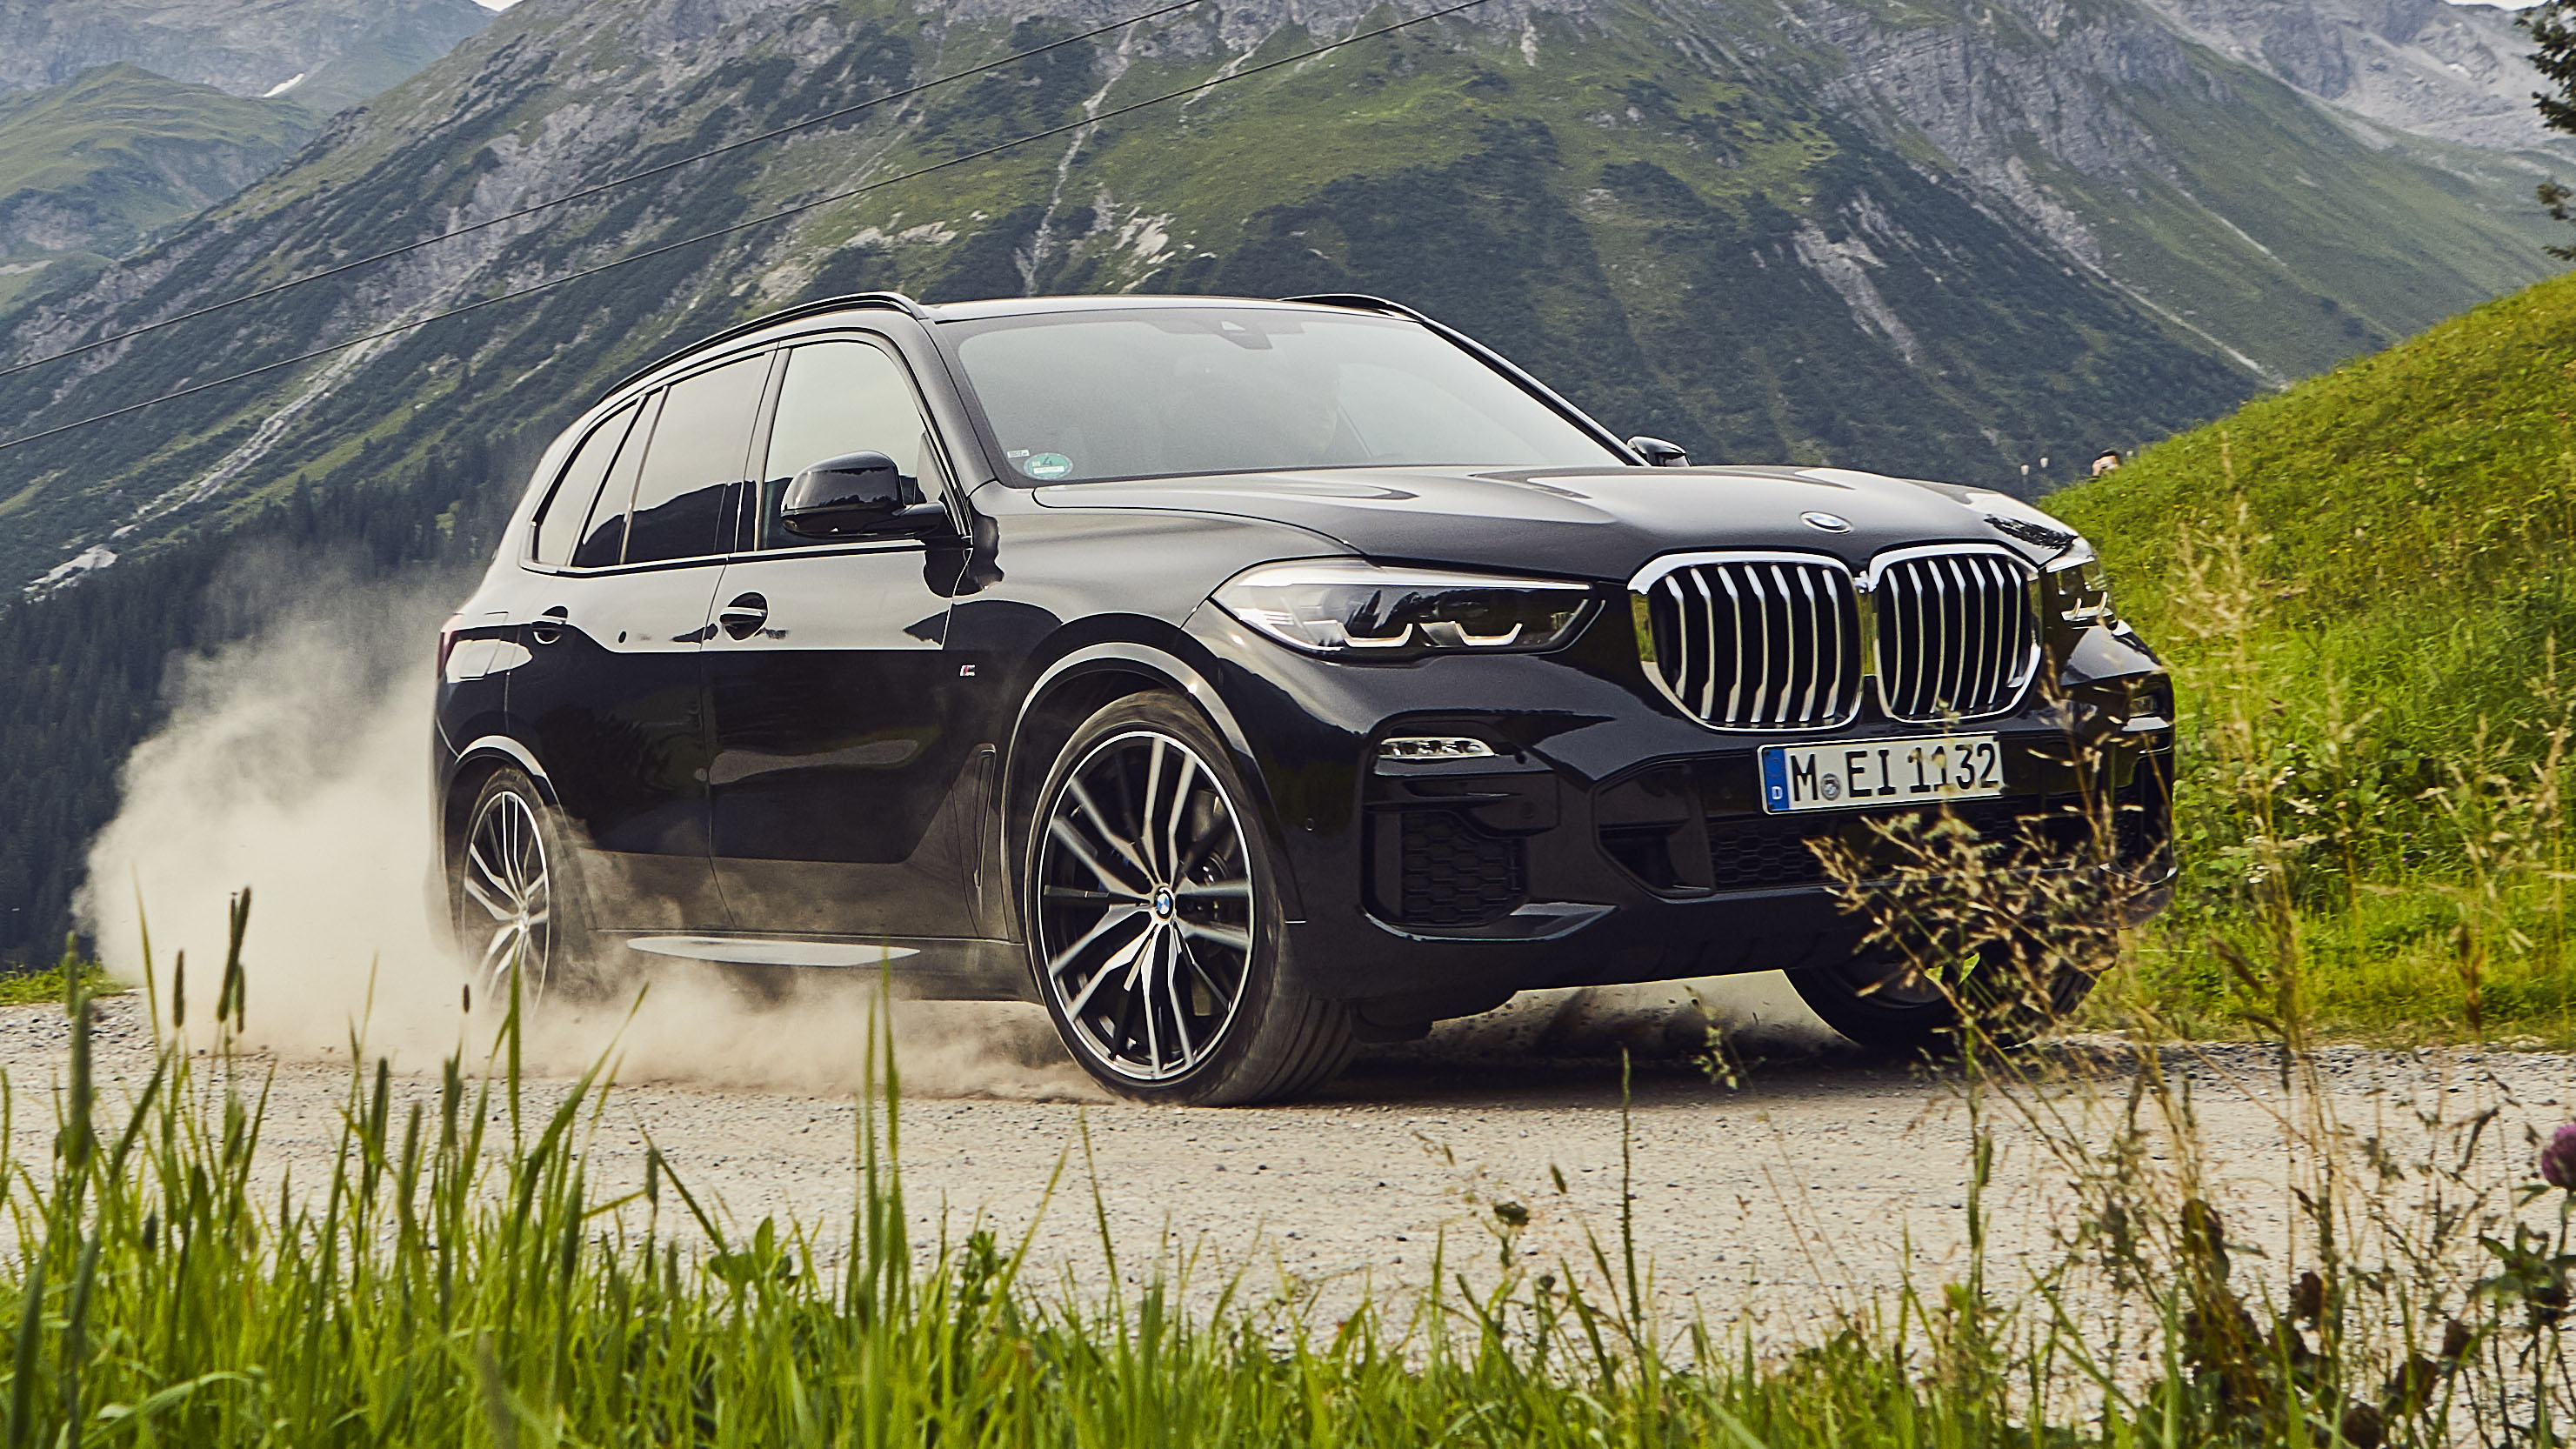 Bmw X5 45e Review Plug In Hybrid Suv Tested Top Gear